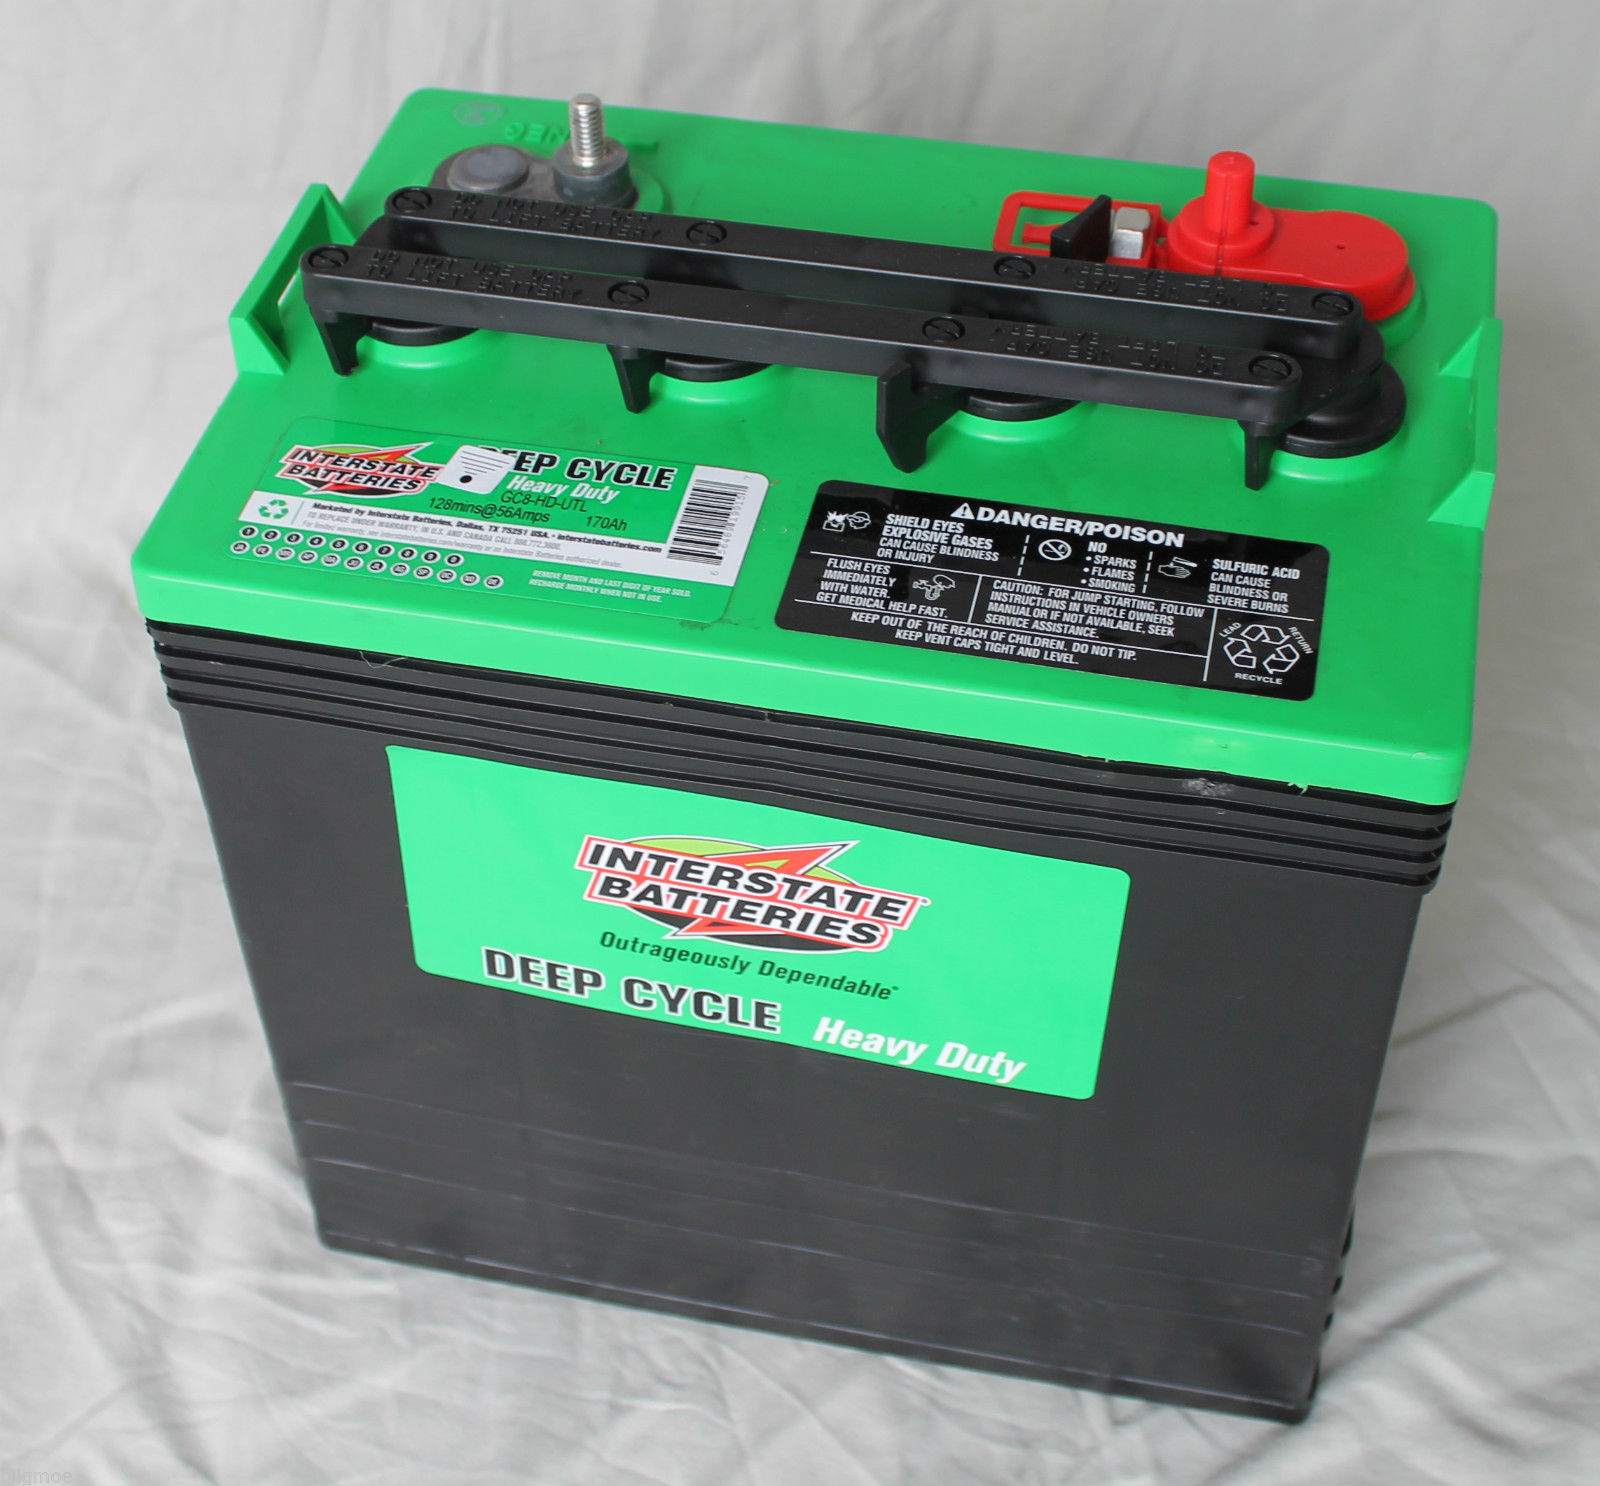 Interstate batteries solar rechargeable batteries autos post for Interstate deep cycle trolling motor battery